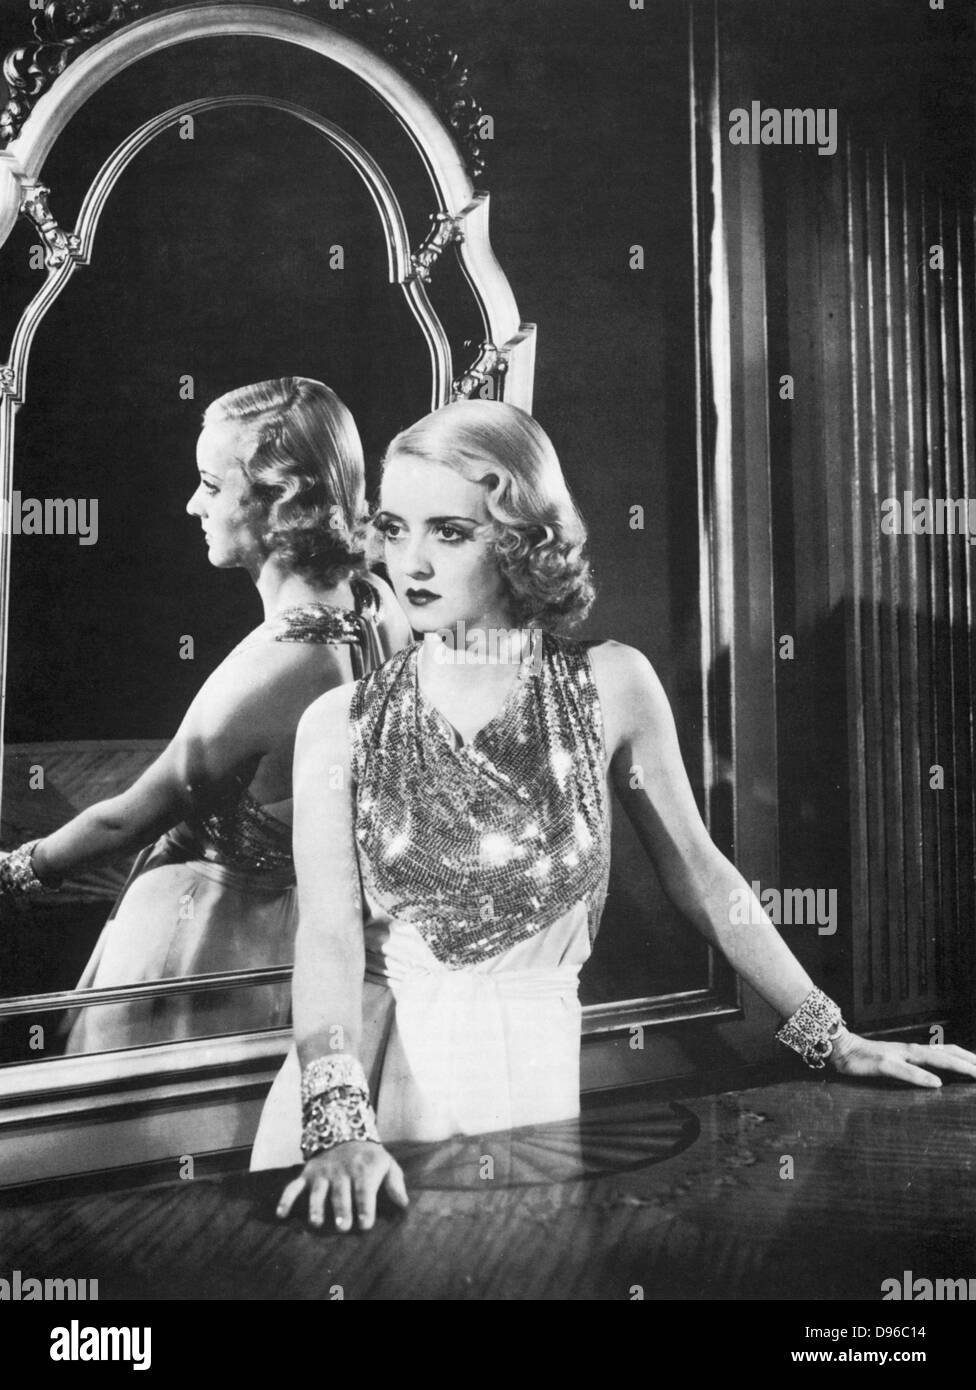 Bette Davis (1908-1989) as an infatuated 'flapper' in 'The Rich Are Always With Us', 1932 - Stock Image